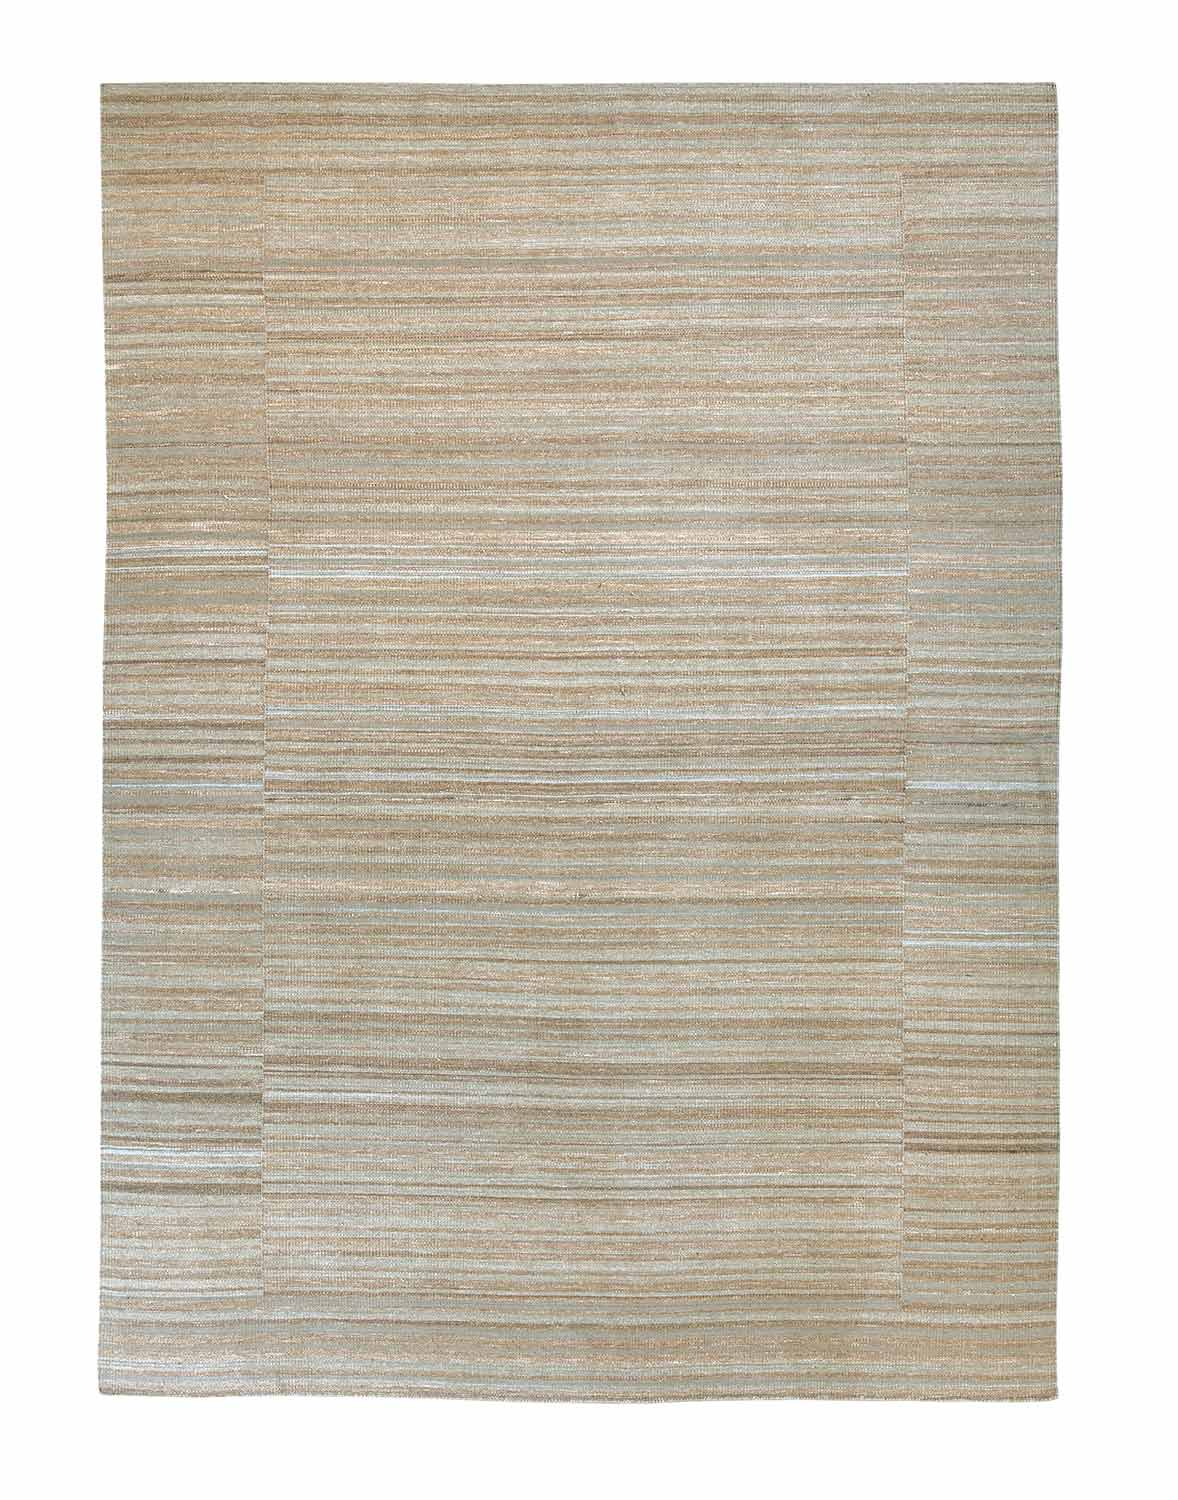 Ashley Flatweave Medium Rug - Tan